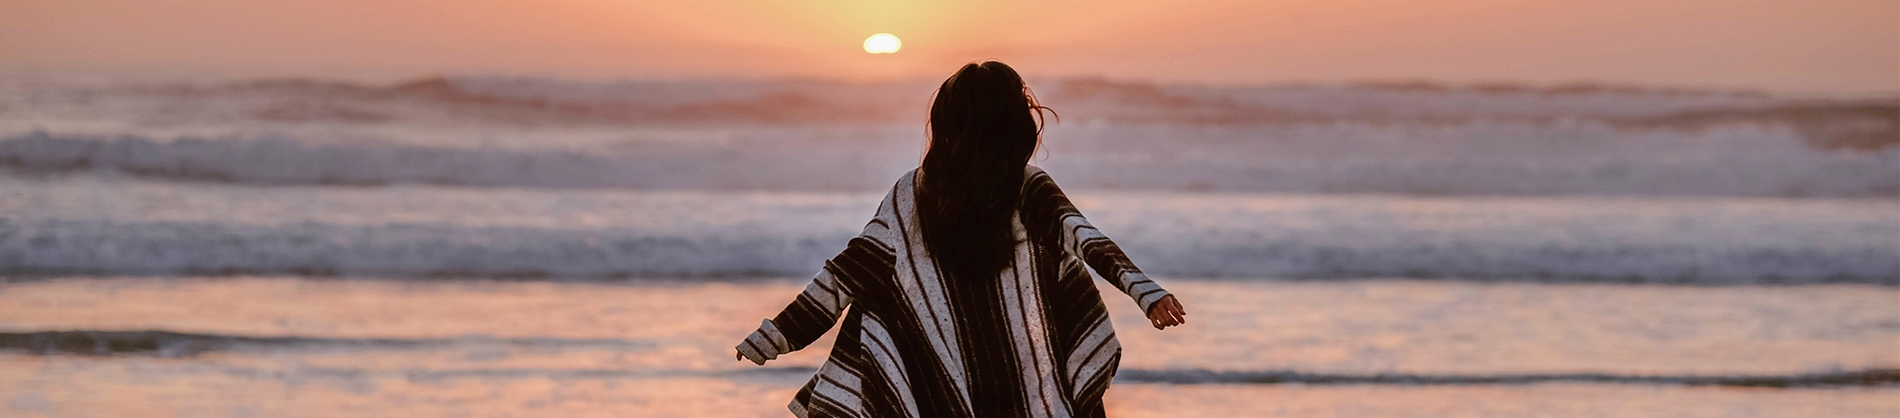 A women with her arms out beside her looking towards a sunset and the ocean